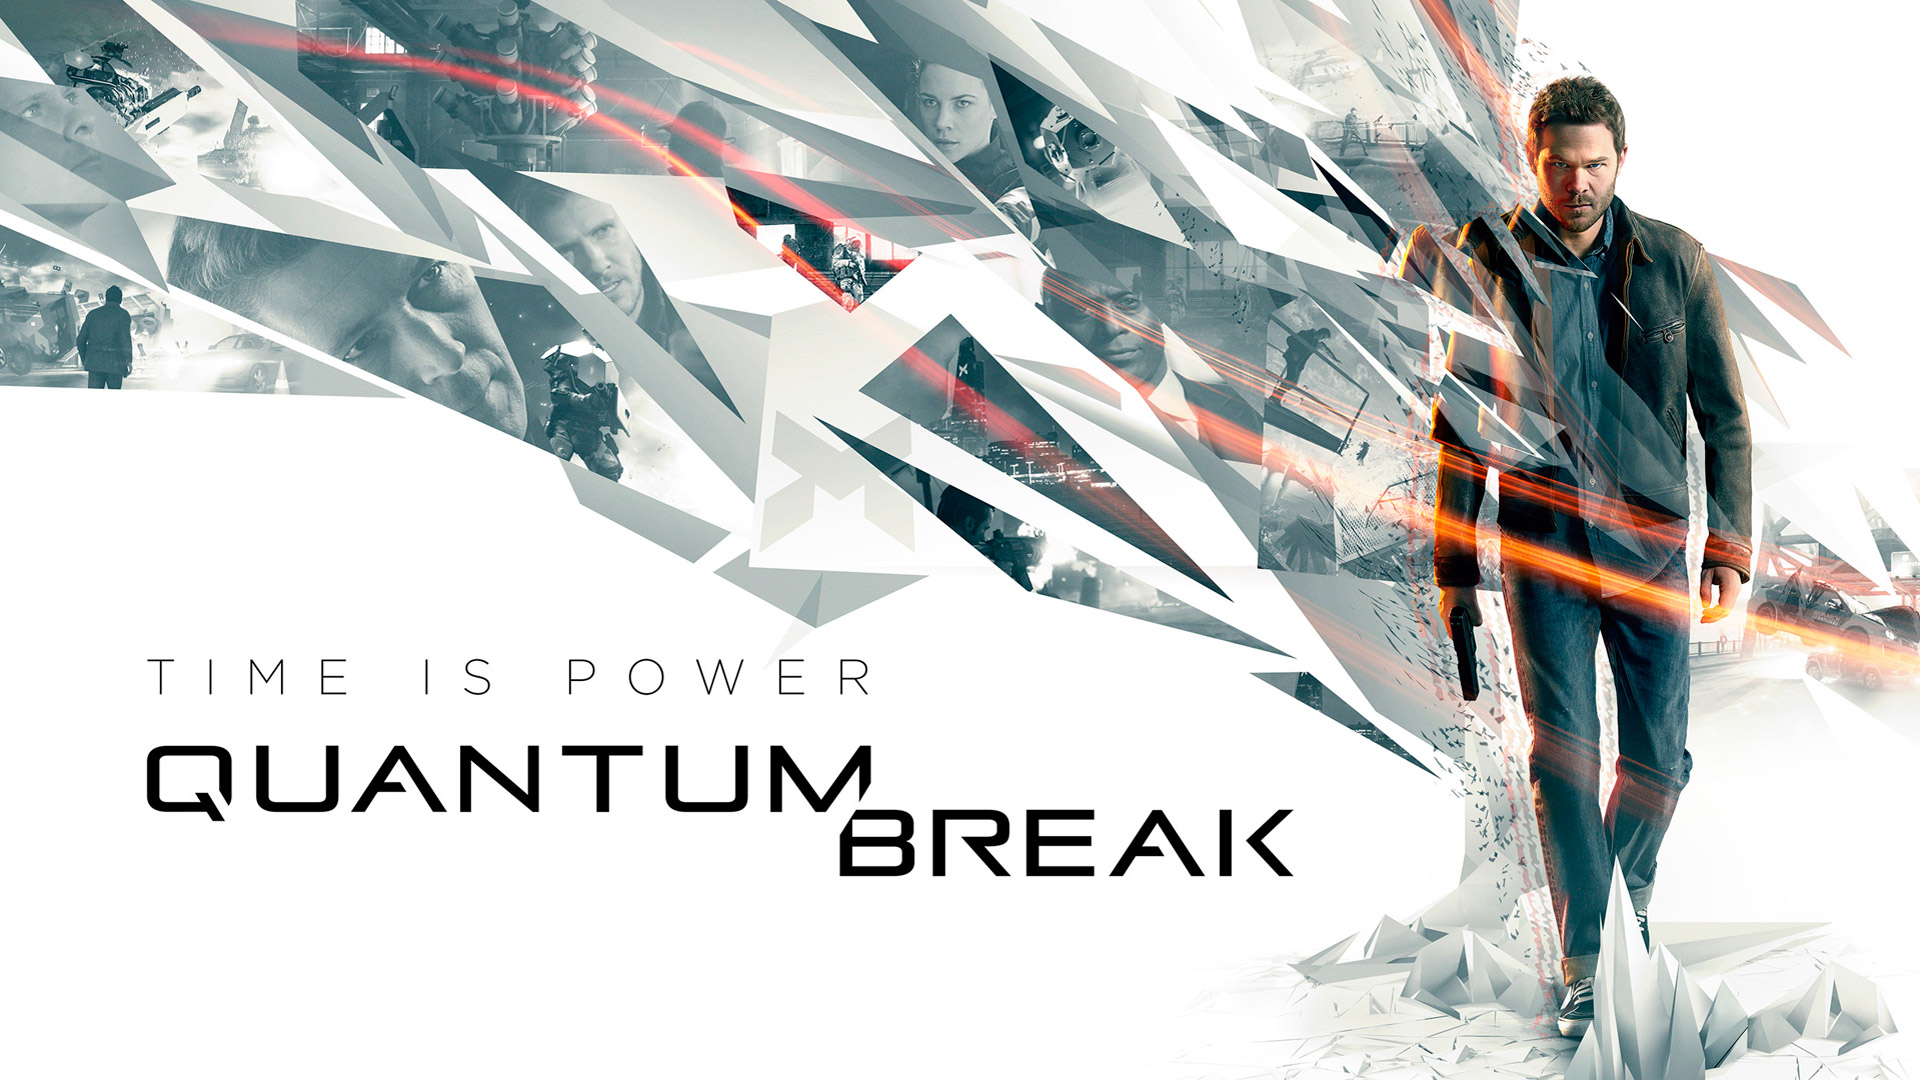 Quantum Break Wallpaper in 1920x1080